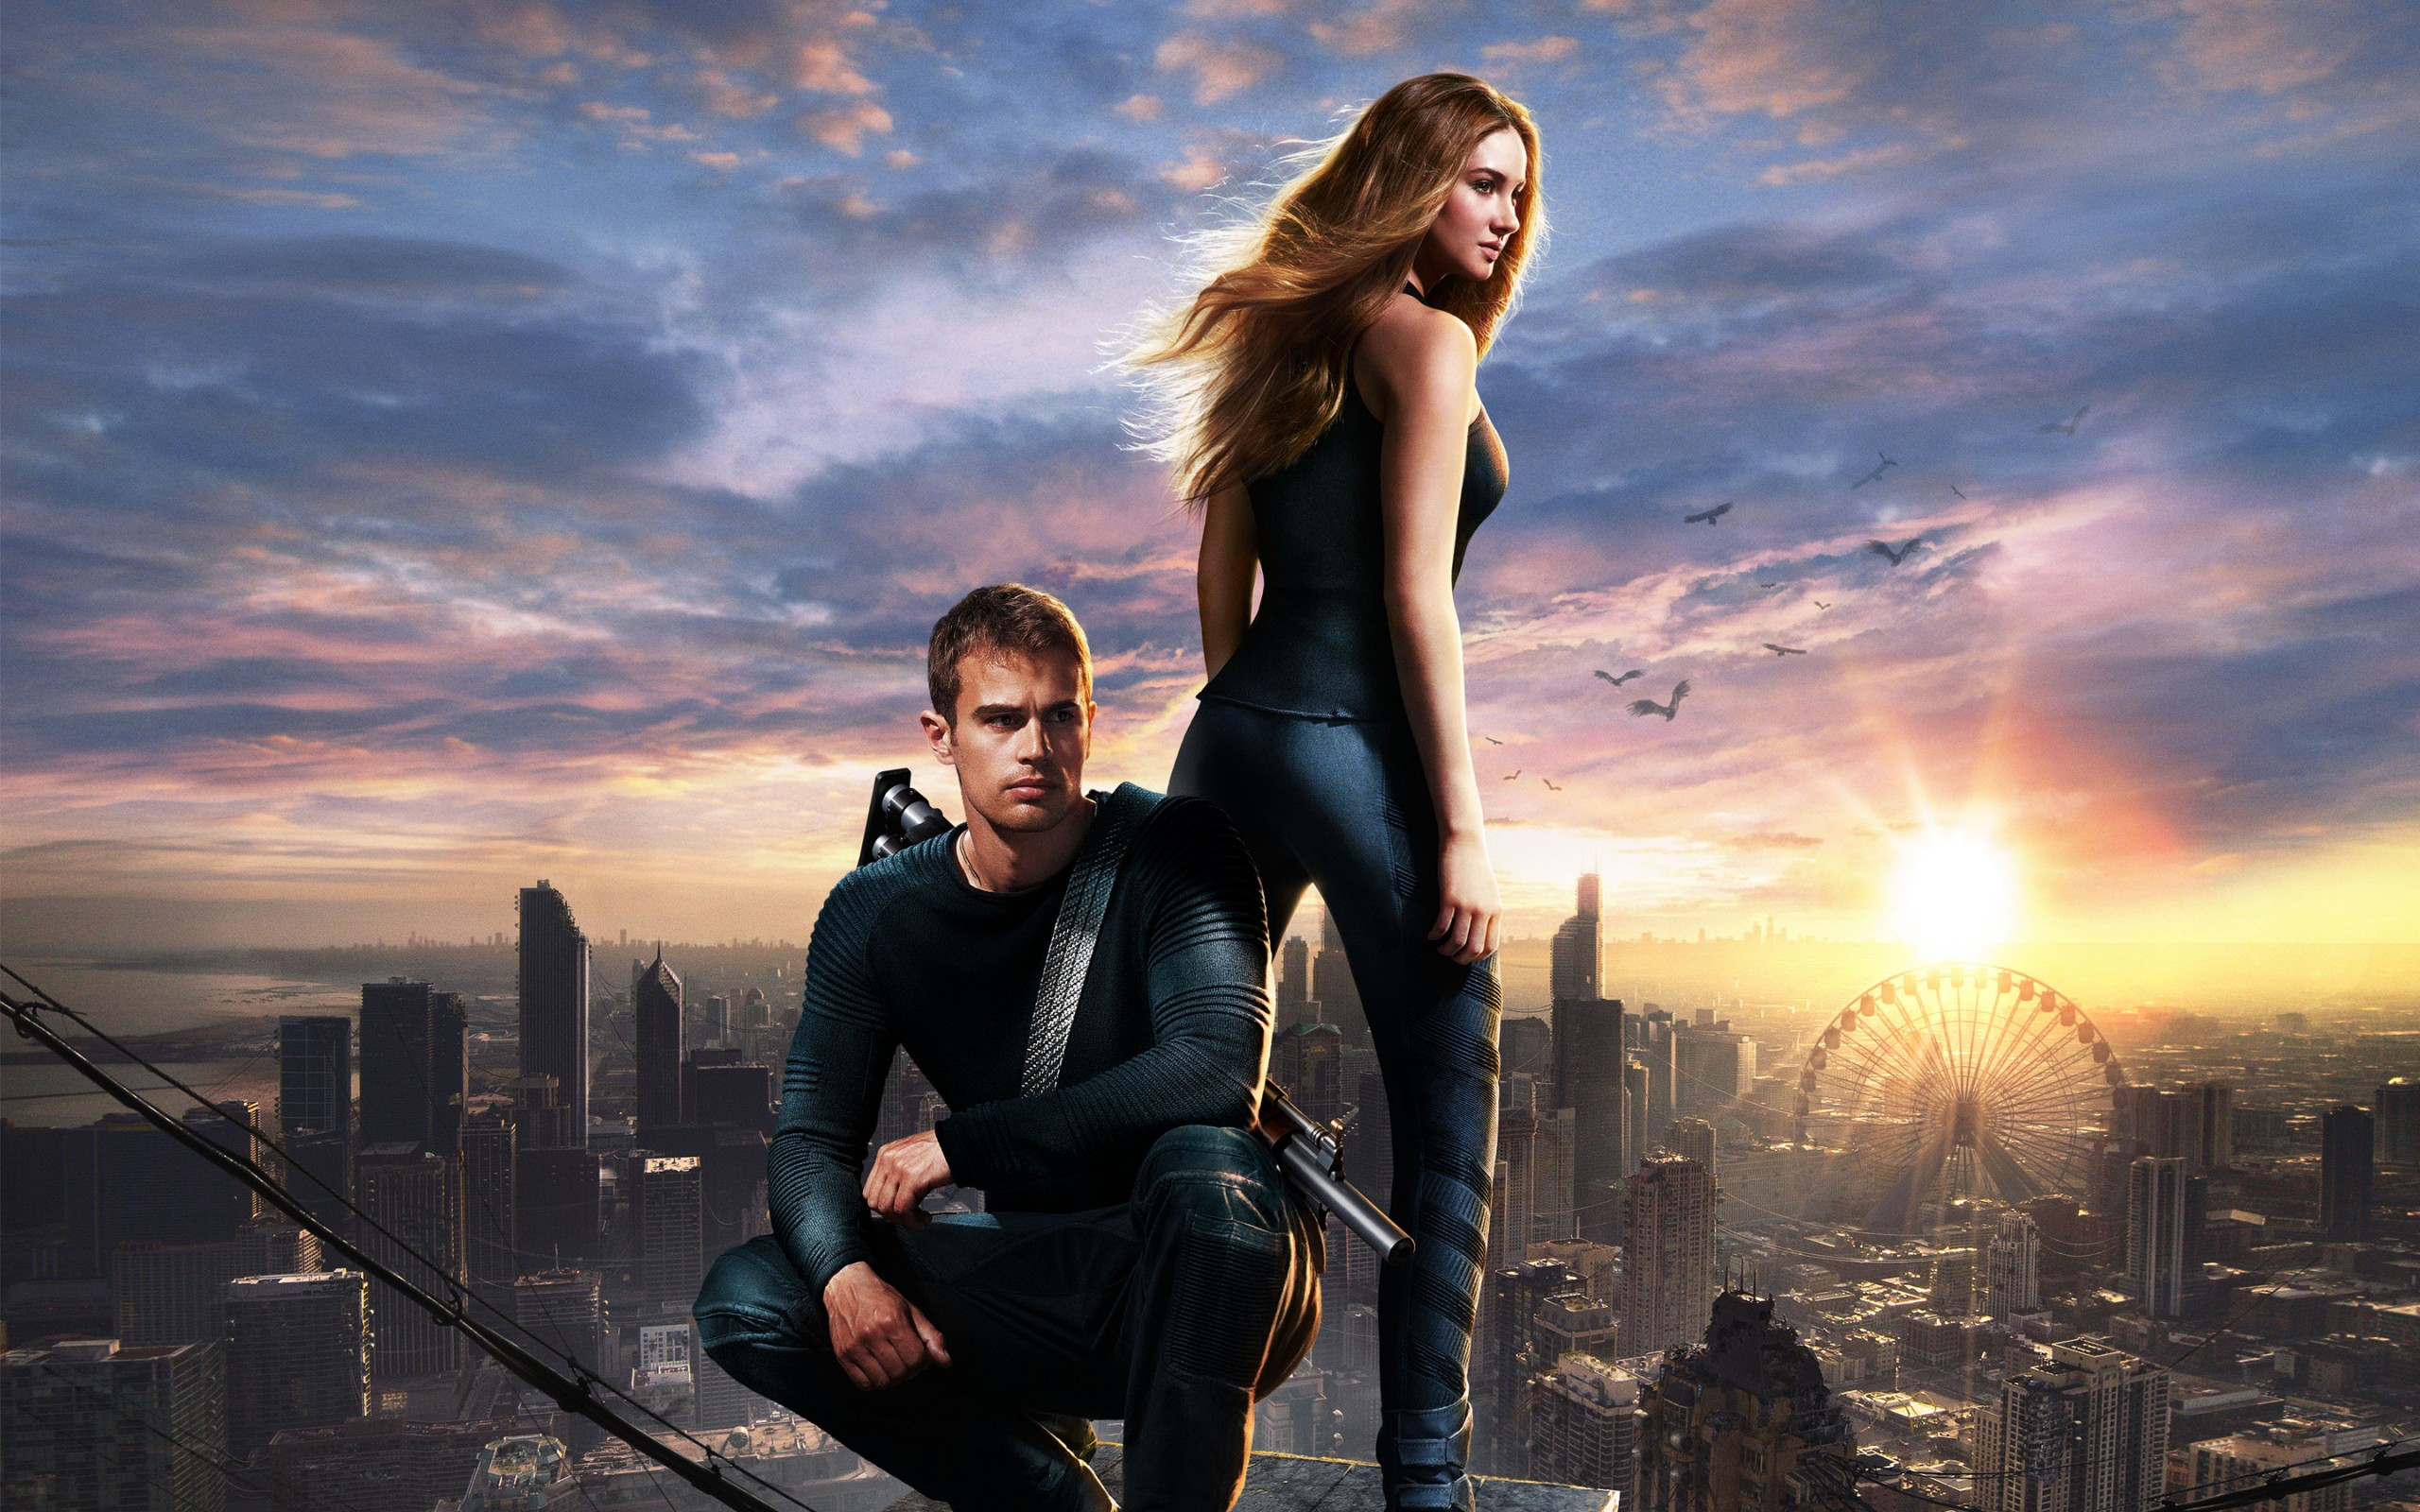 Cute Heart Images For Wallpaper Divergent 2014 Movie Wallpapers Hd Wallpapers Id 13144